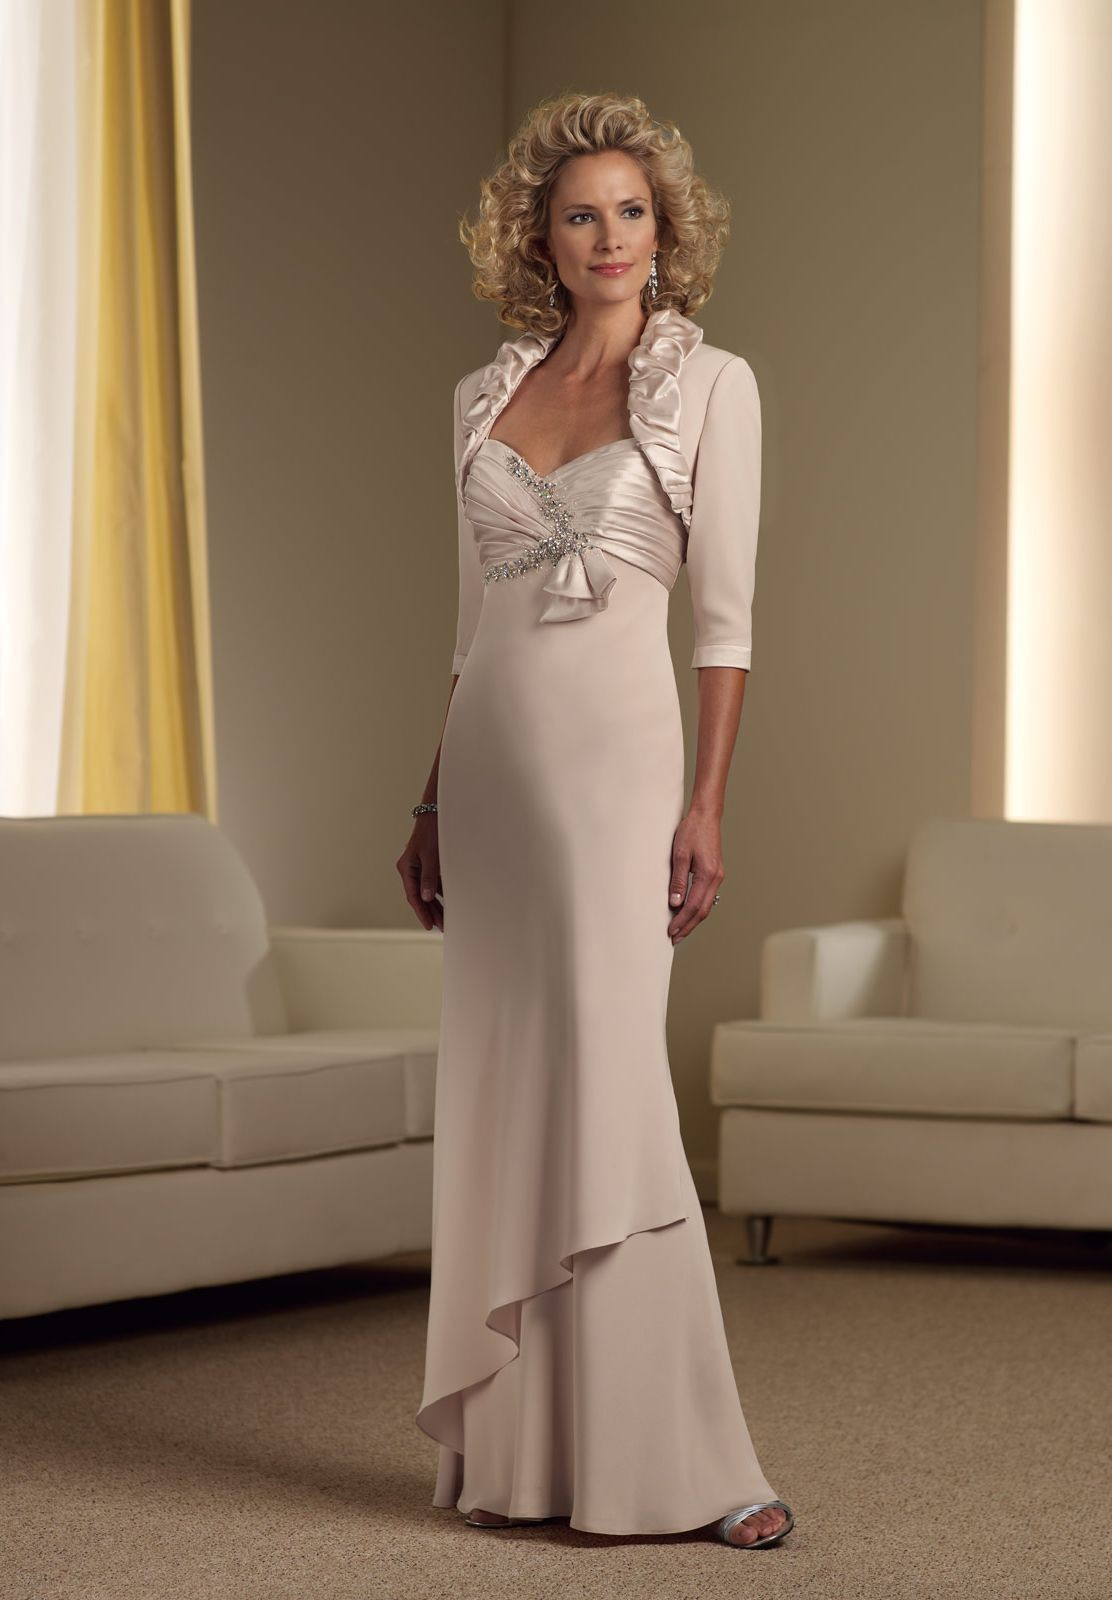 Mother of the Bride Dress Ideas and Do's and Dont's - Outfit Ideas HQ